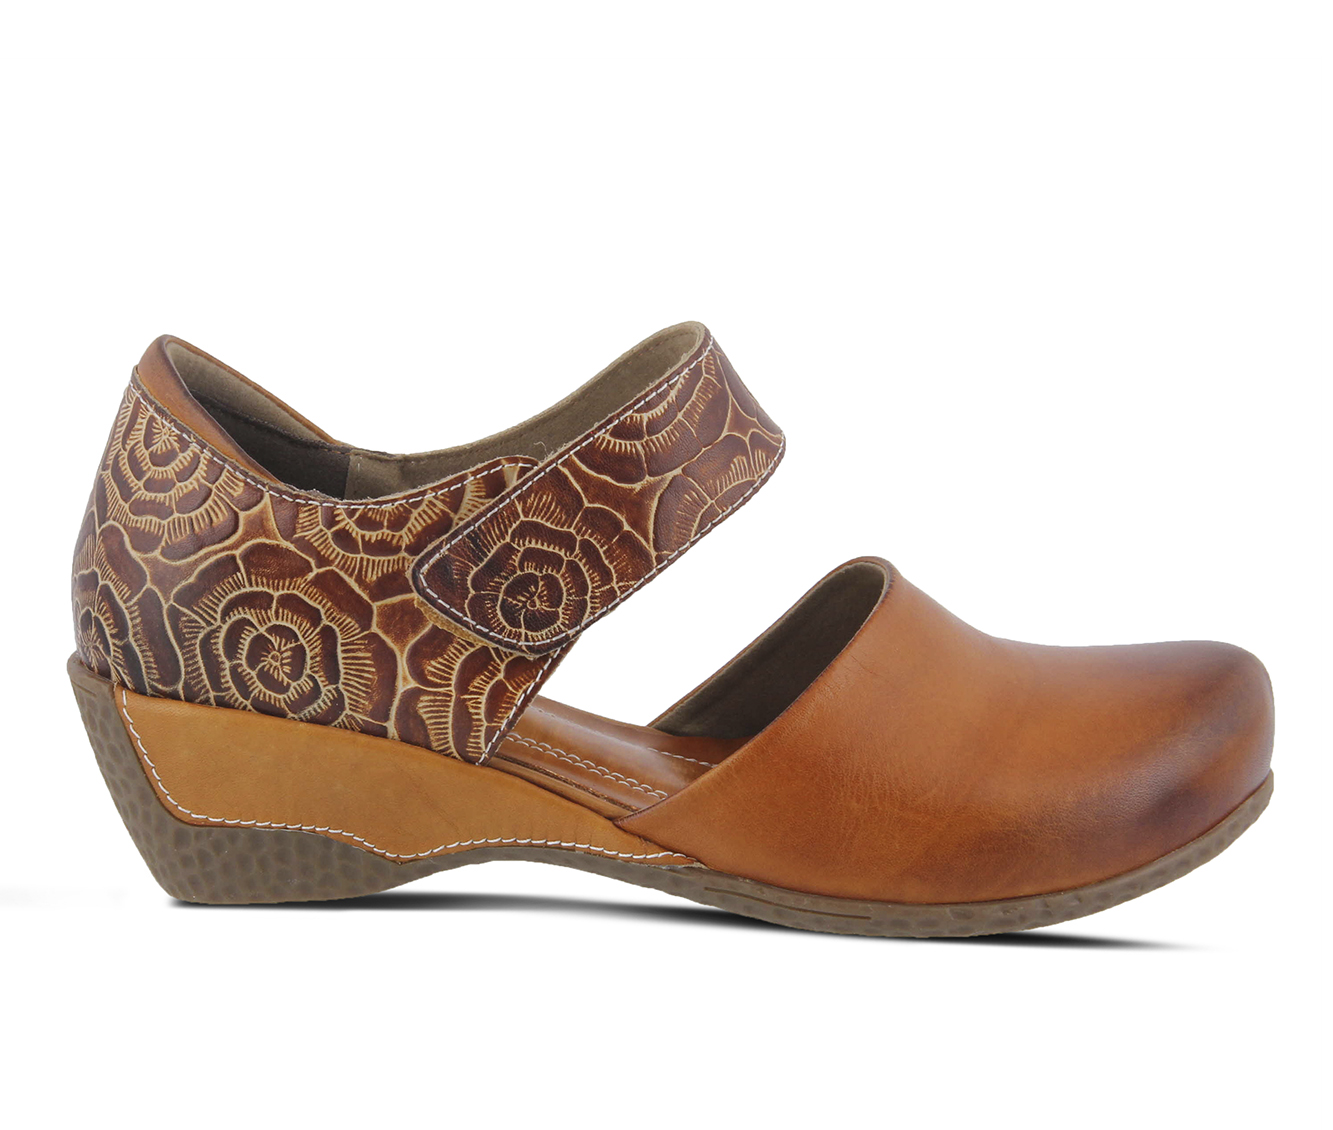 L'Artiste Gloss-Pansy Women's Shoe (Brown Leather)